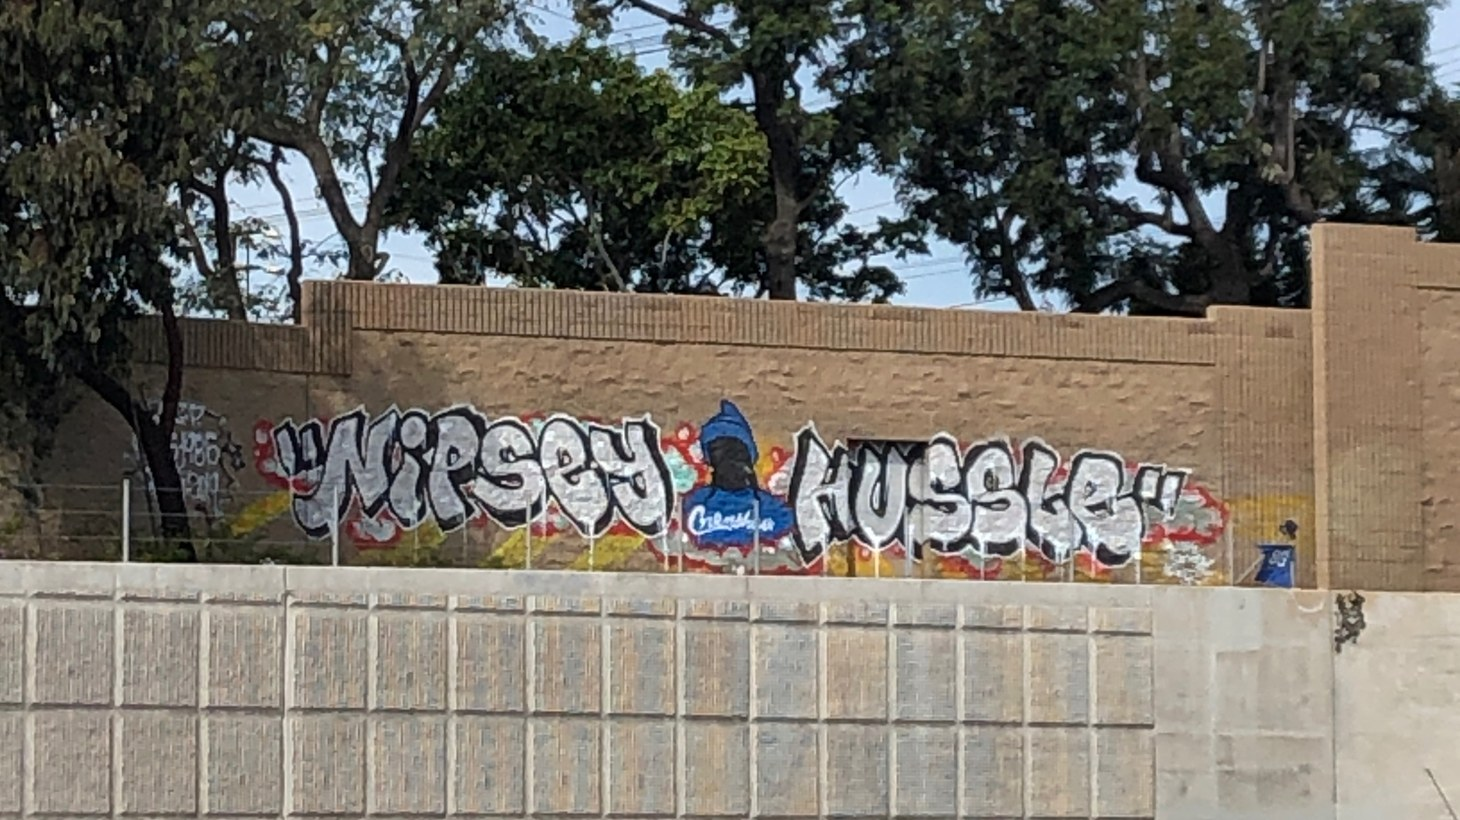 Nipsey Hussle graffiti as seen off the 405 freeway.